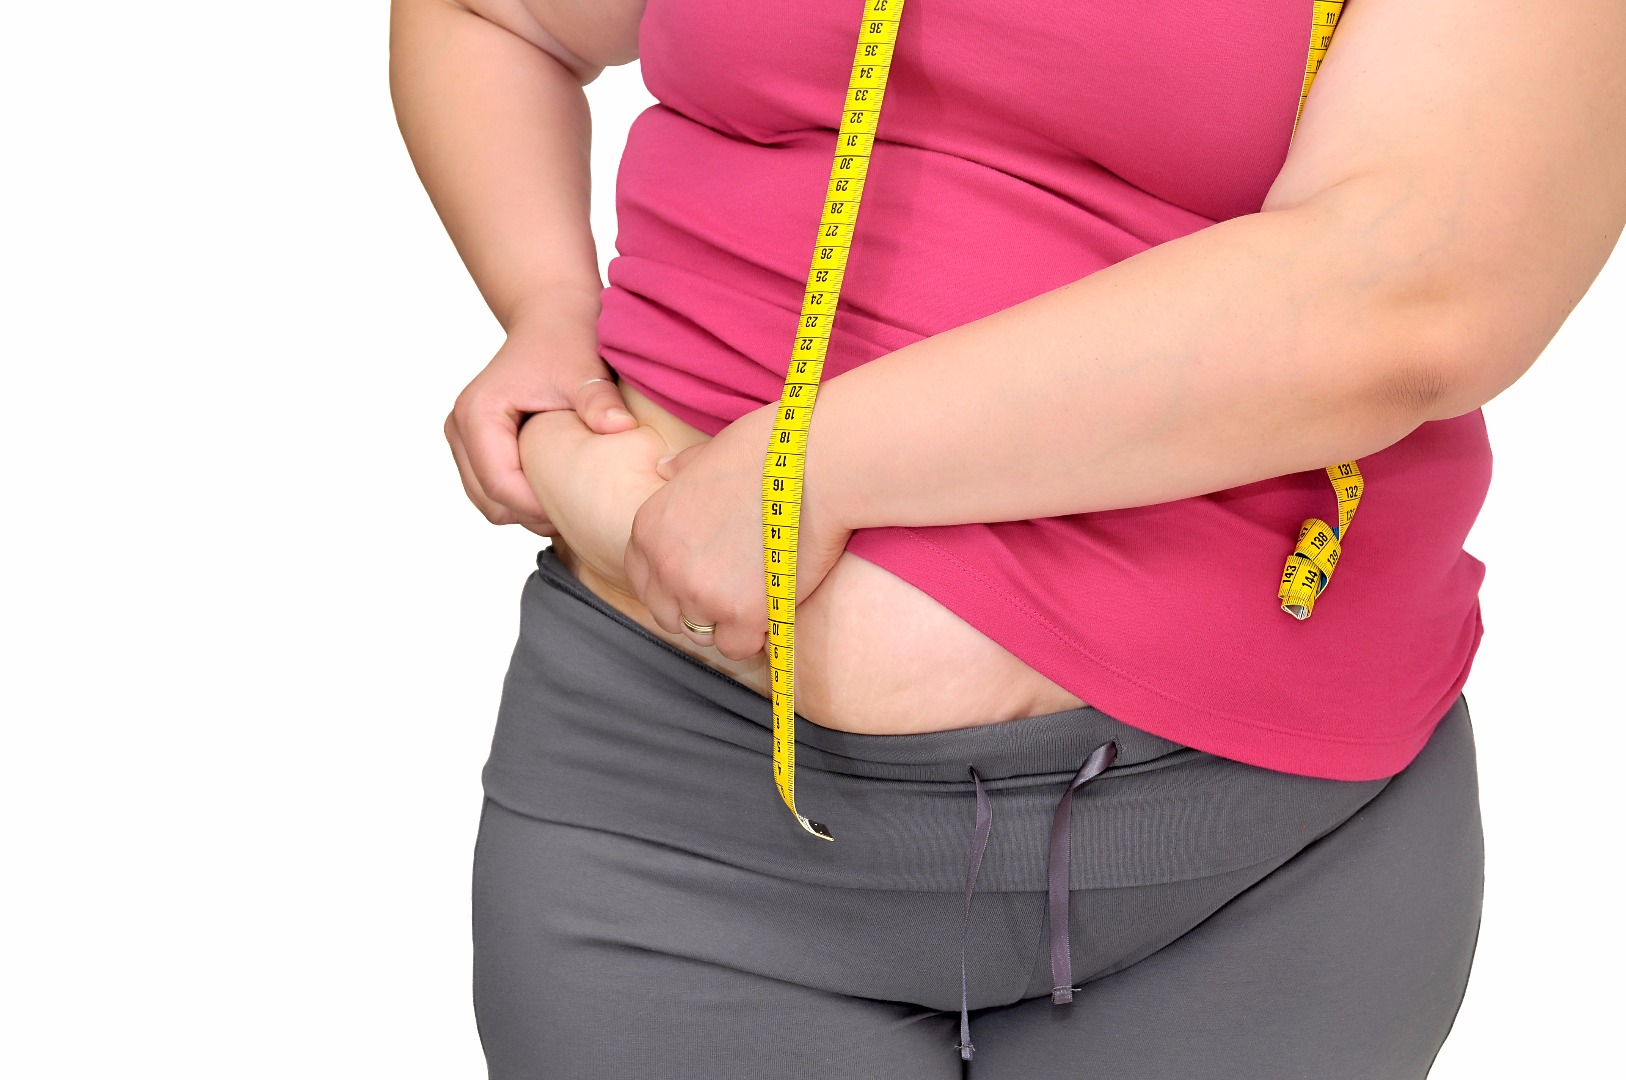 New diabetes drug may also treat obesity